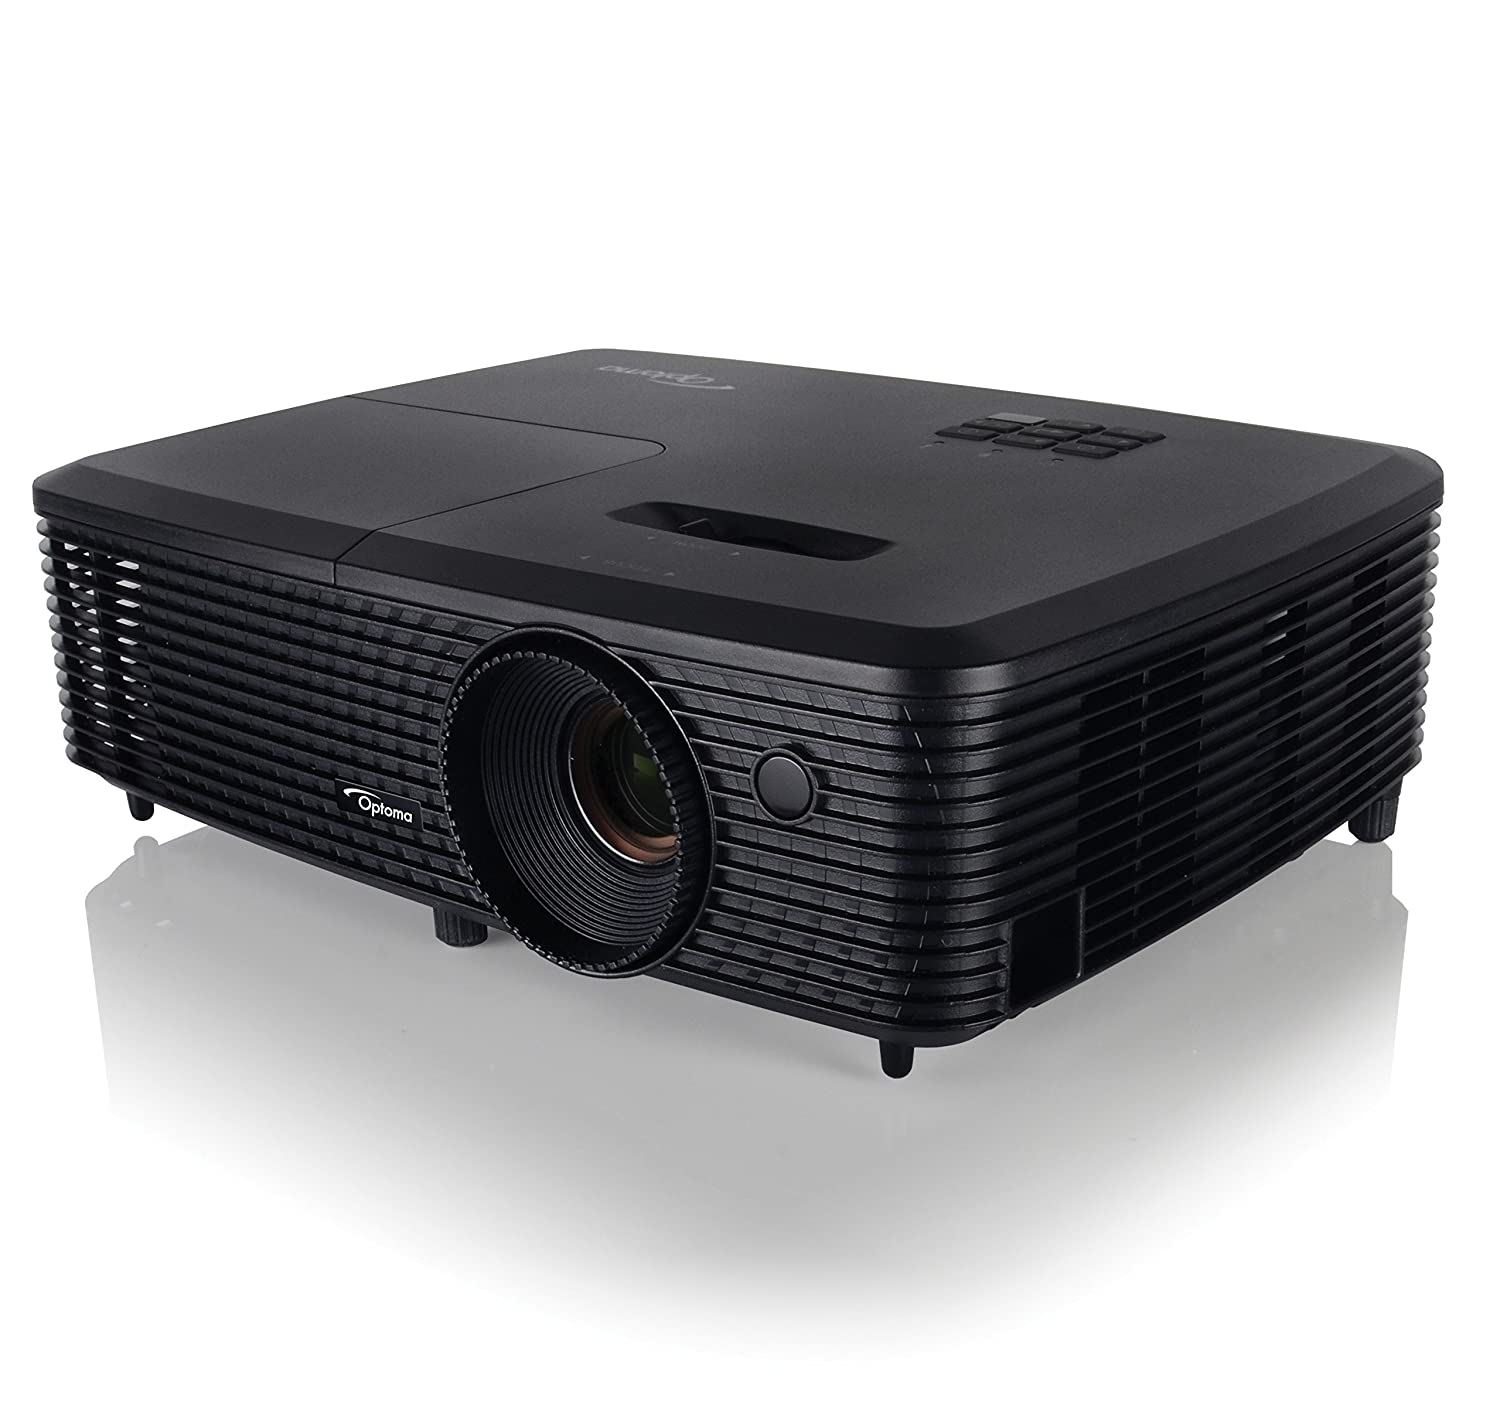 Optoma S341 3500 Lumens SVGA 3D DLP Projector with Superior Lamp Life and HDMI for sale in Trinidad